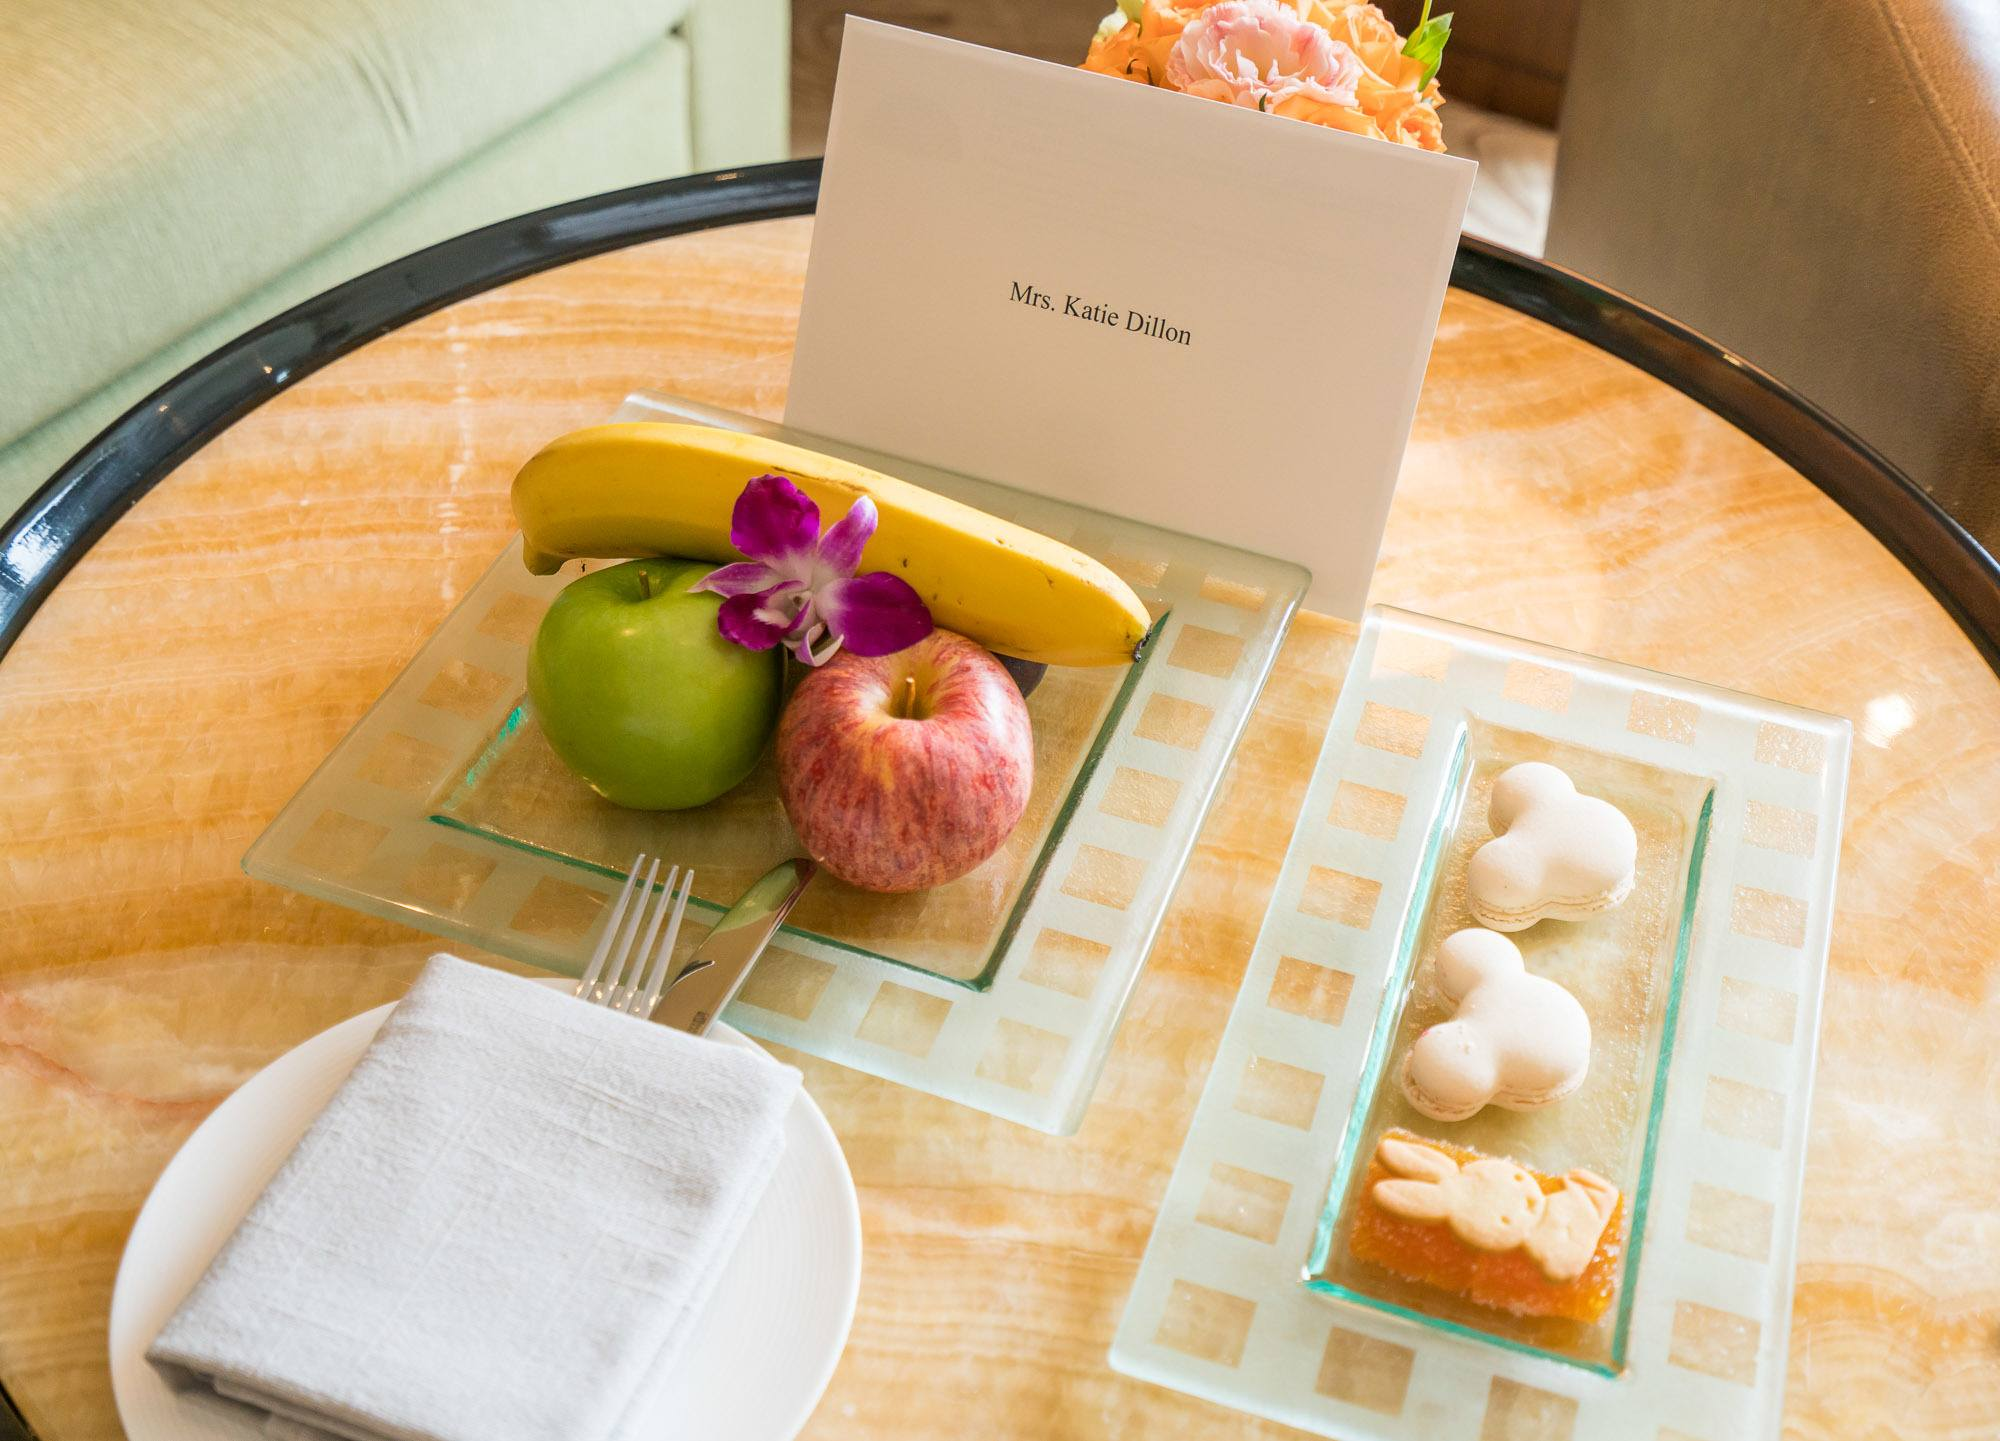 Our welcome amenity at Mandarin Oriental Pudong, Shanghai.